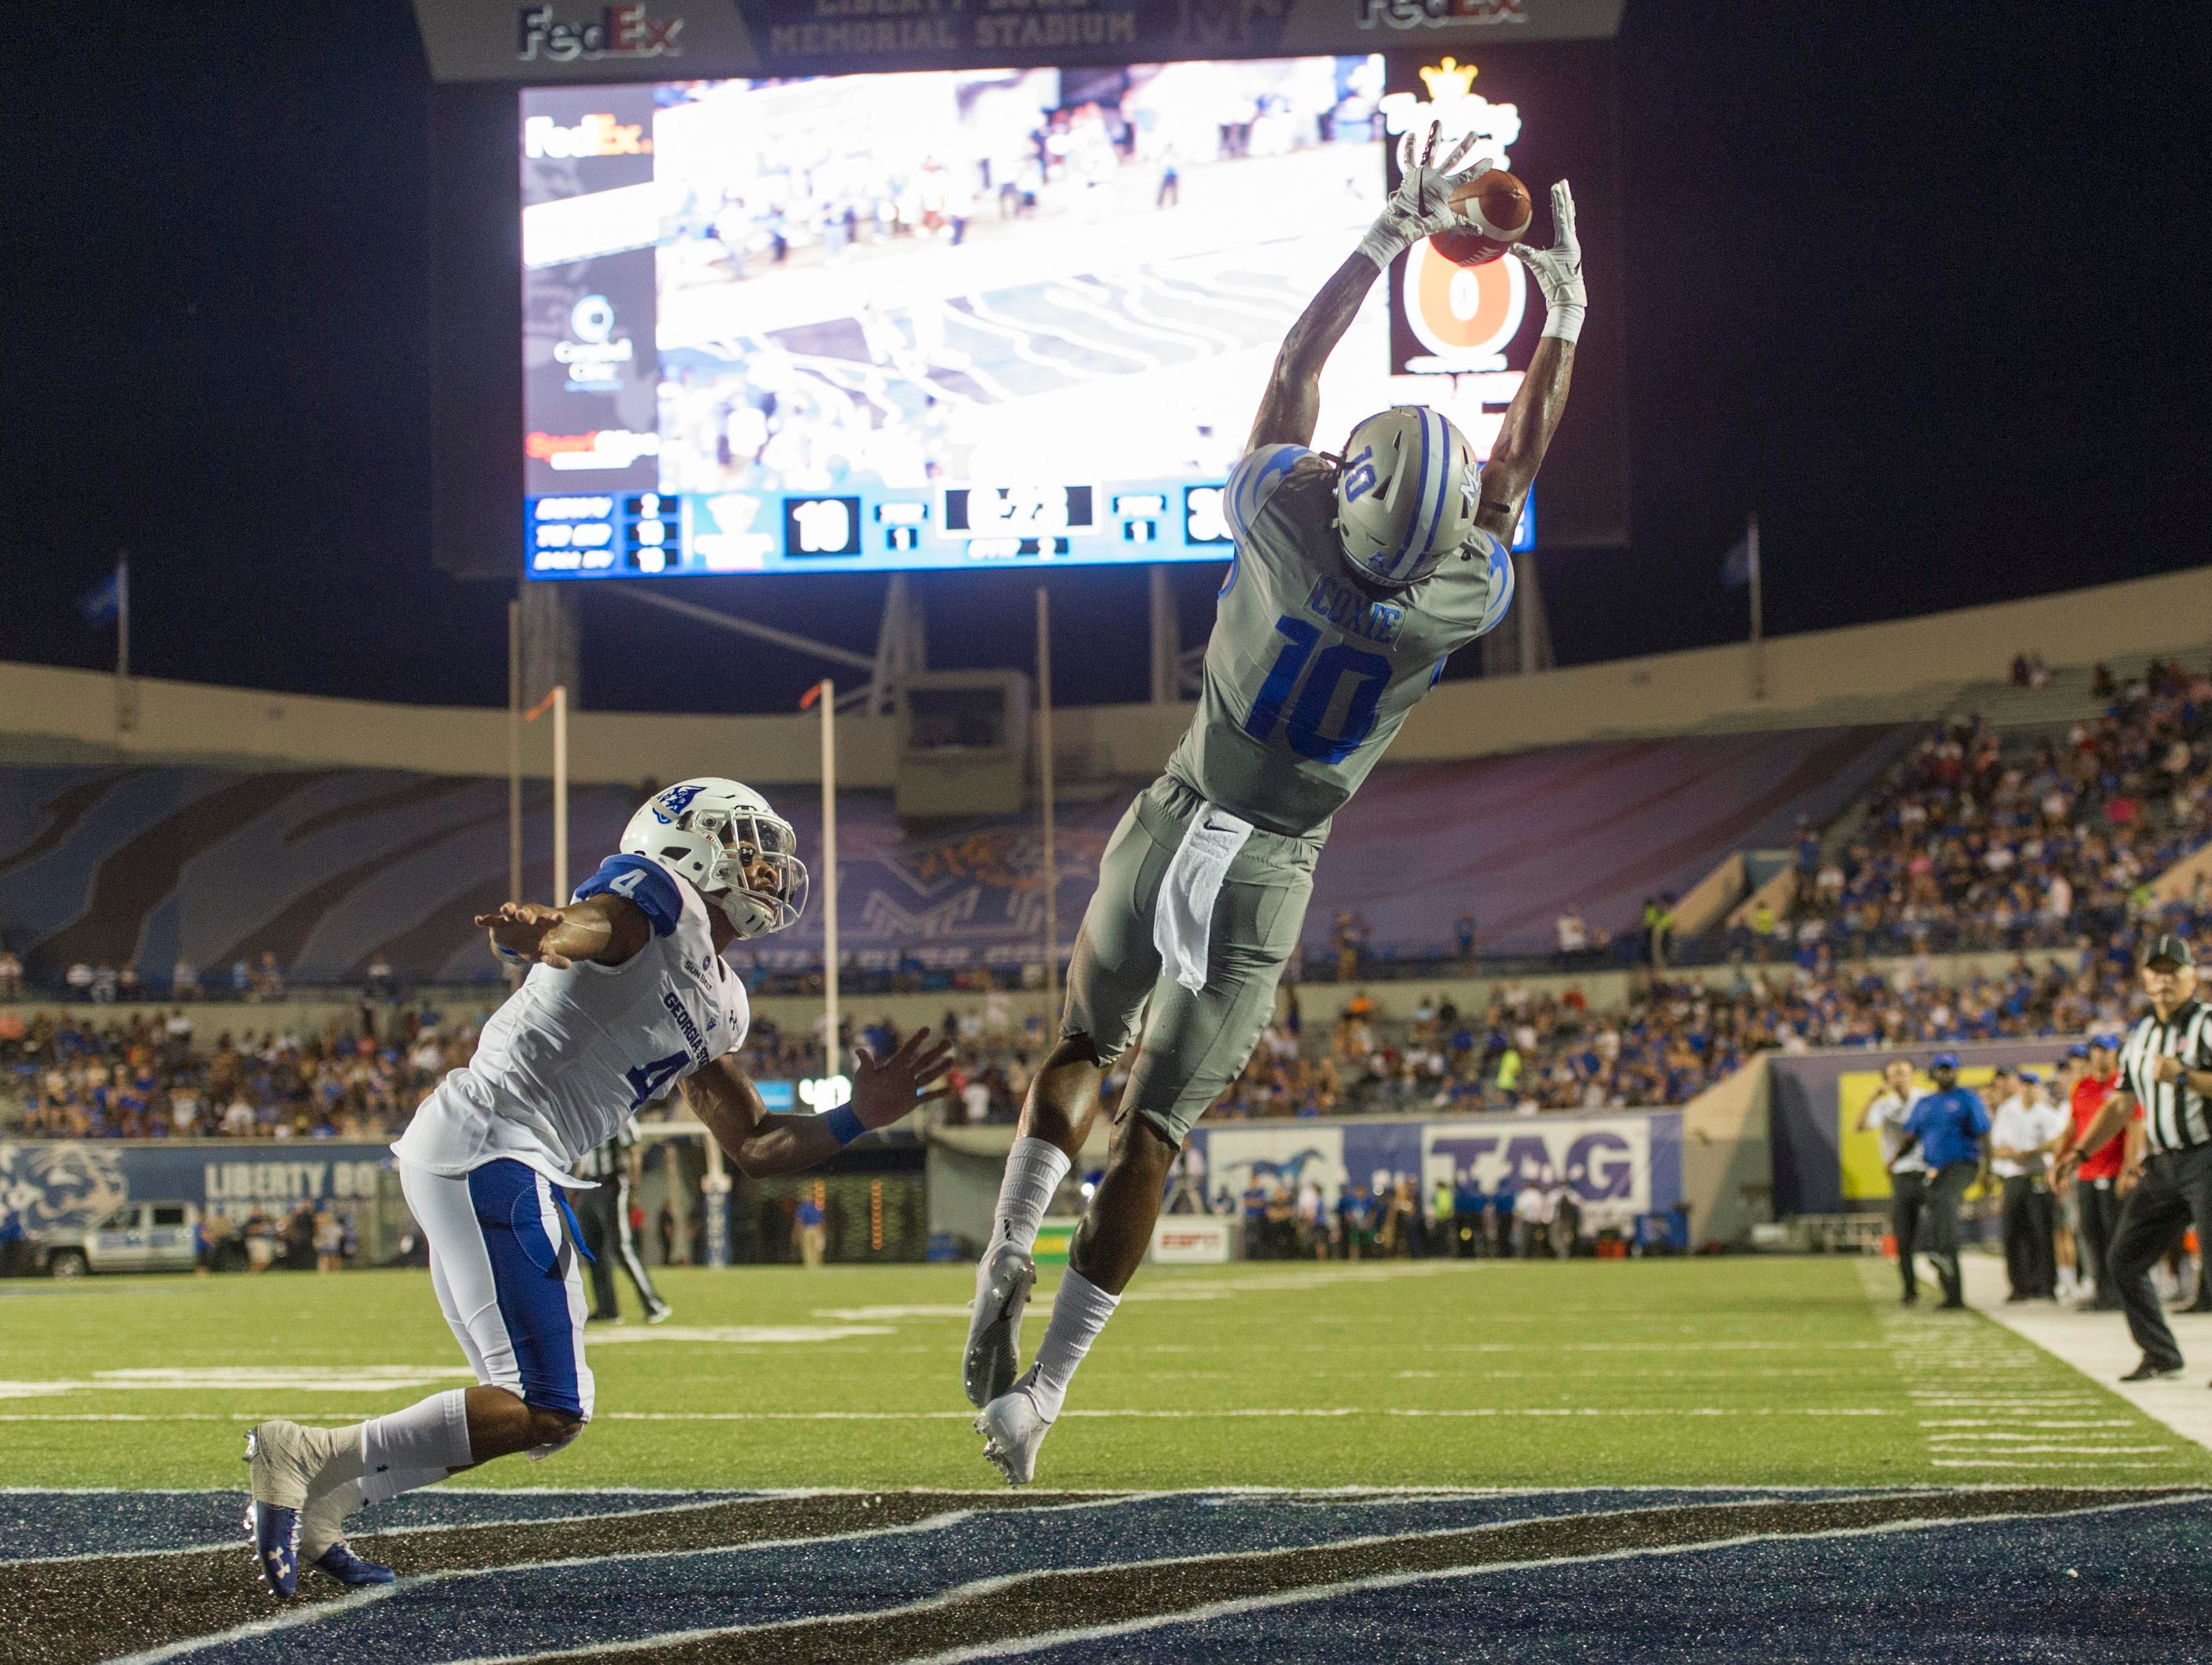 Memphis Tigers wide receiver Damonte Coxie (10) attempts to catch a pass against Georgia State Panthers cornerback Khai Anderson (4) during the first half at Liberty Bowl Memorial Stadium.